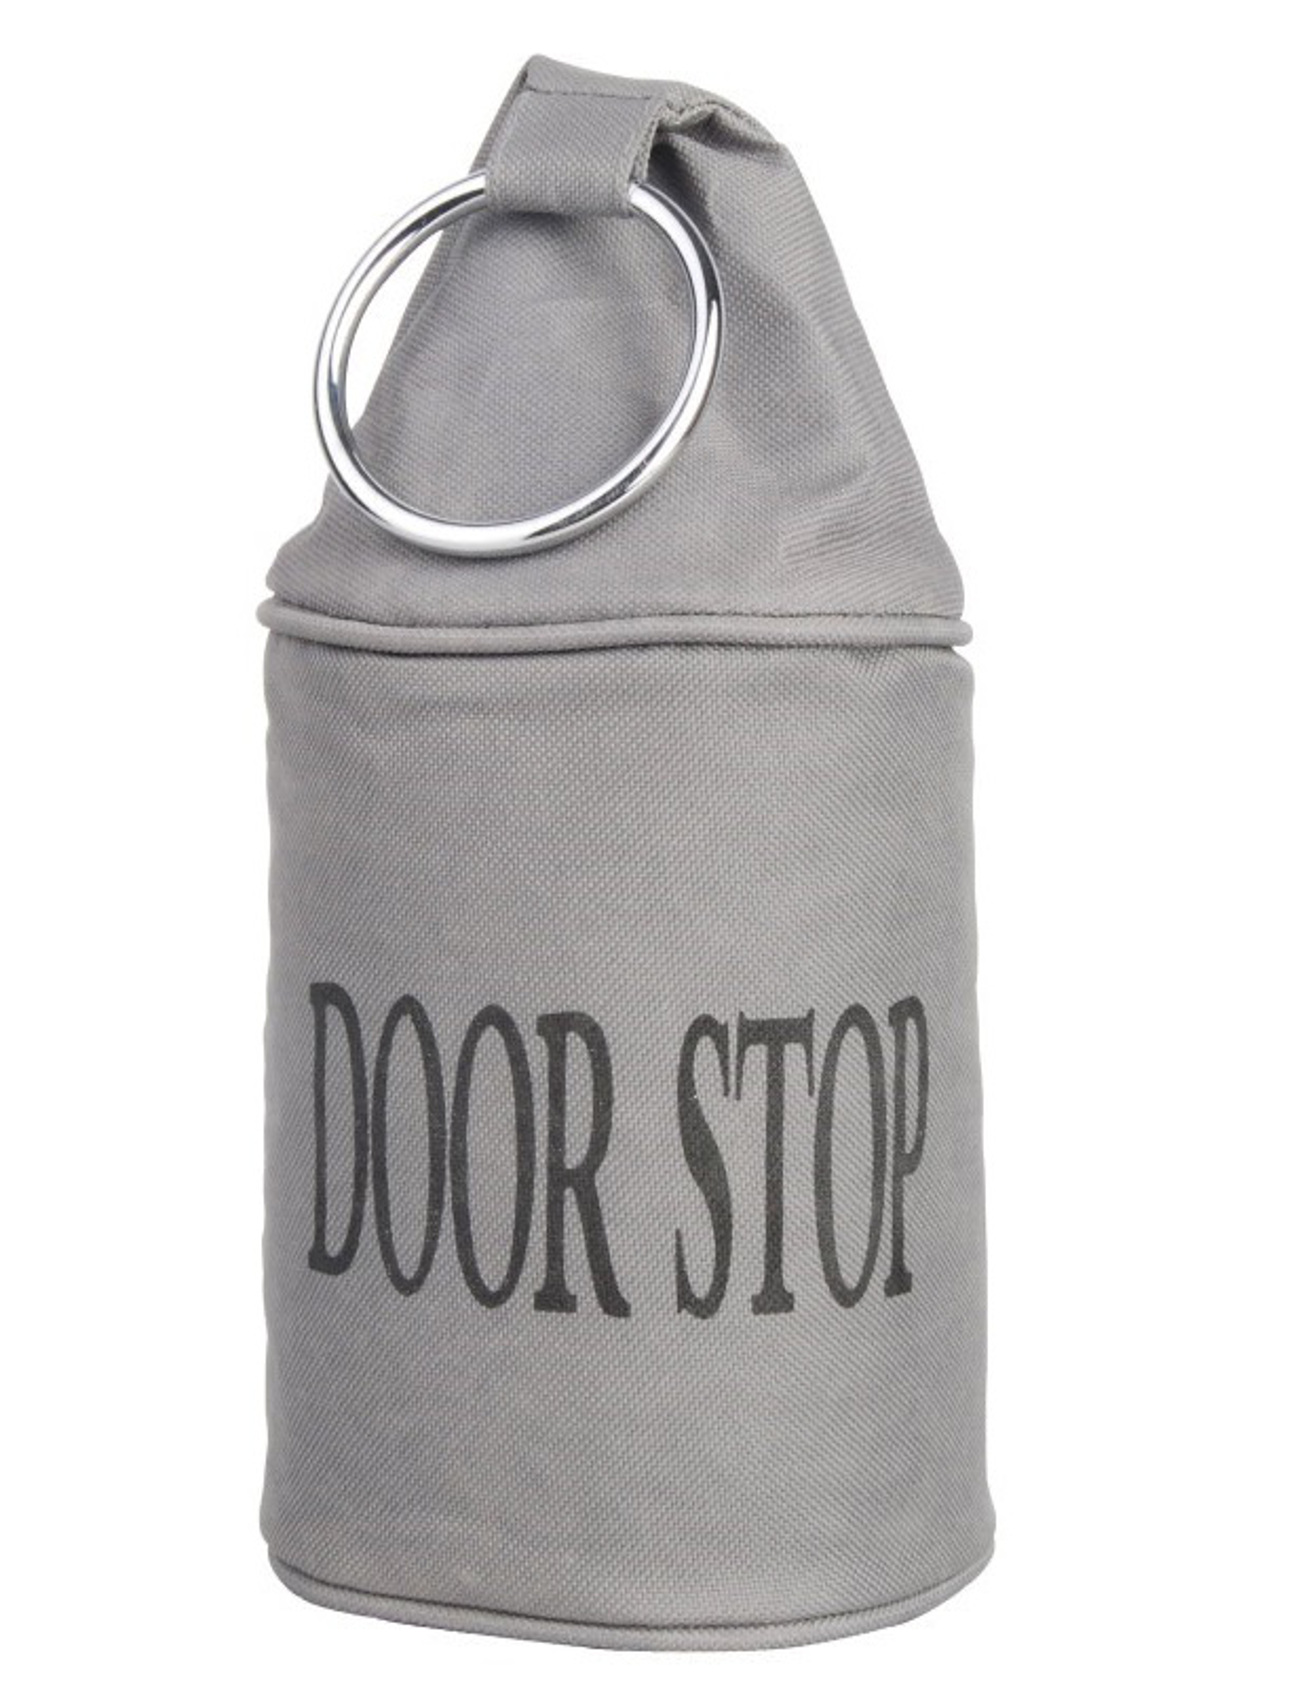 Fabric Door Stopper Fabric Doorstop Metal Ring Heavy Duty Polyester Door Stop